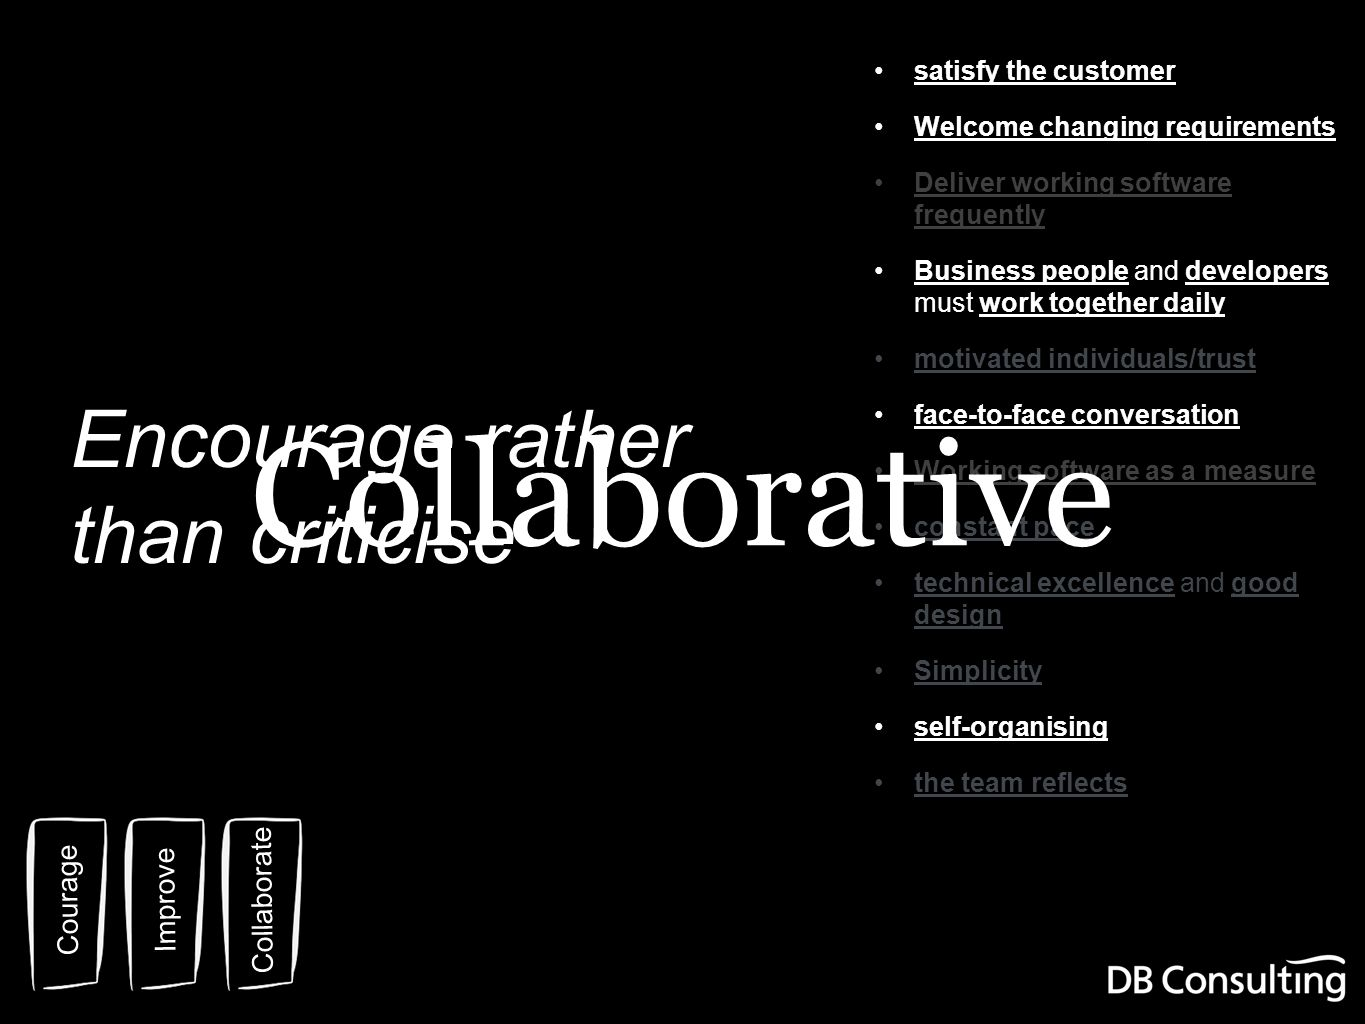 Courage Improve Collaborate satisfy the customer Welcome changing requirements Deliver working software frequently Business people and developers must work together daily motivated individuals/trust face-to-face conversation Working software as a measure constant pace technical excellence and good design Simplicity self-organising the team reflects Collaborative Encourage rather than criticise